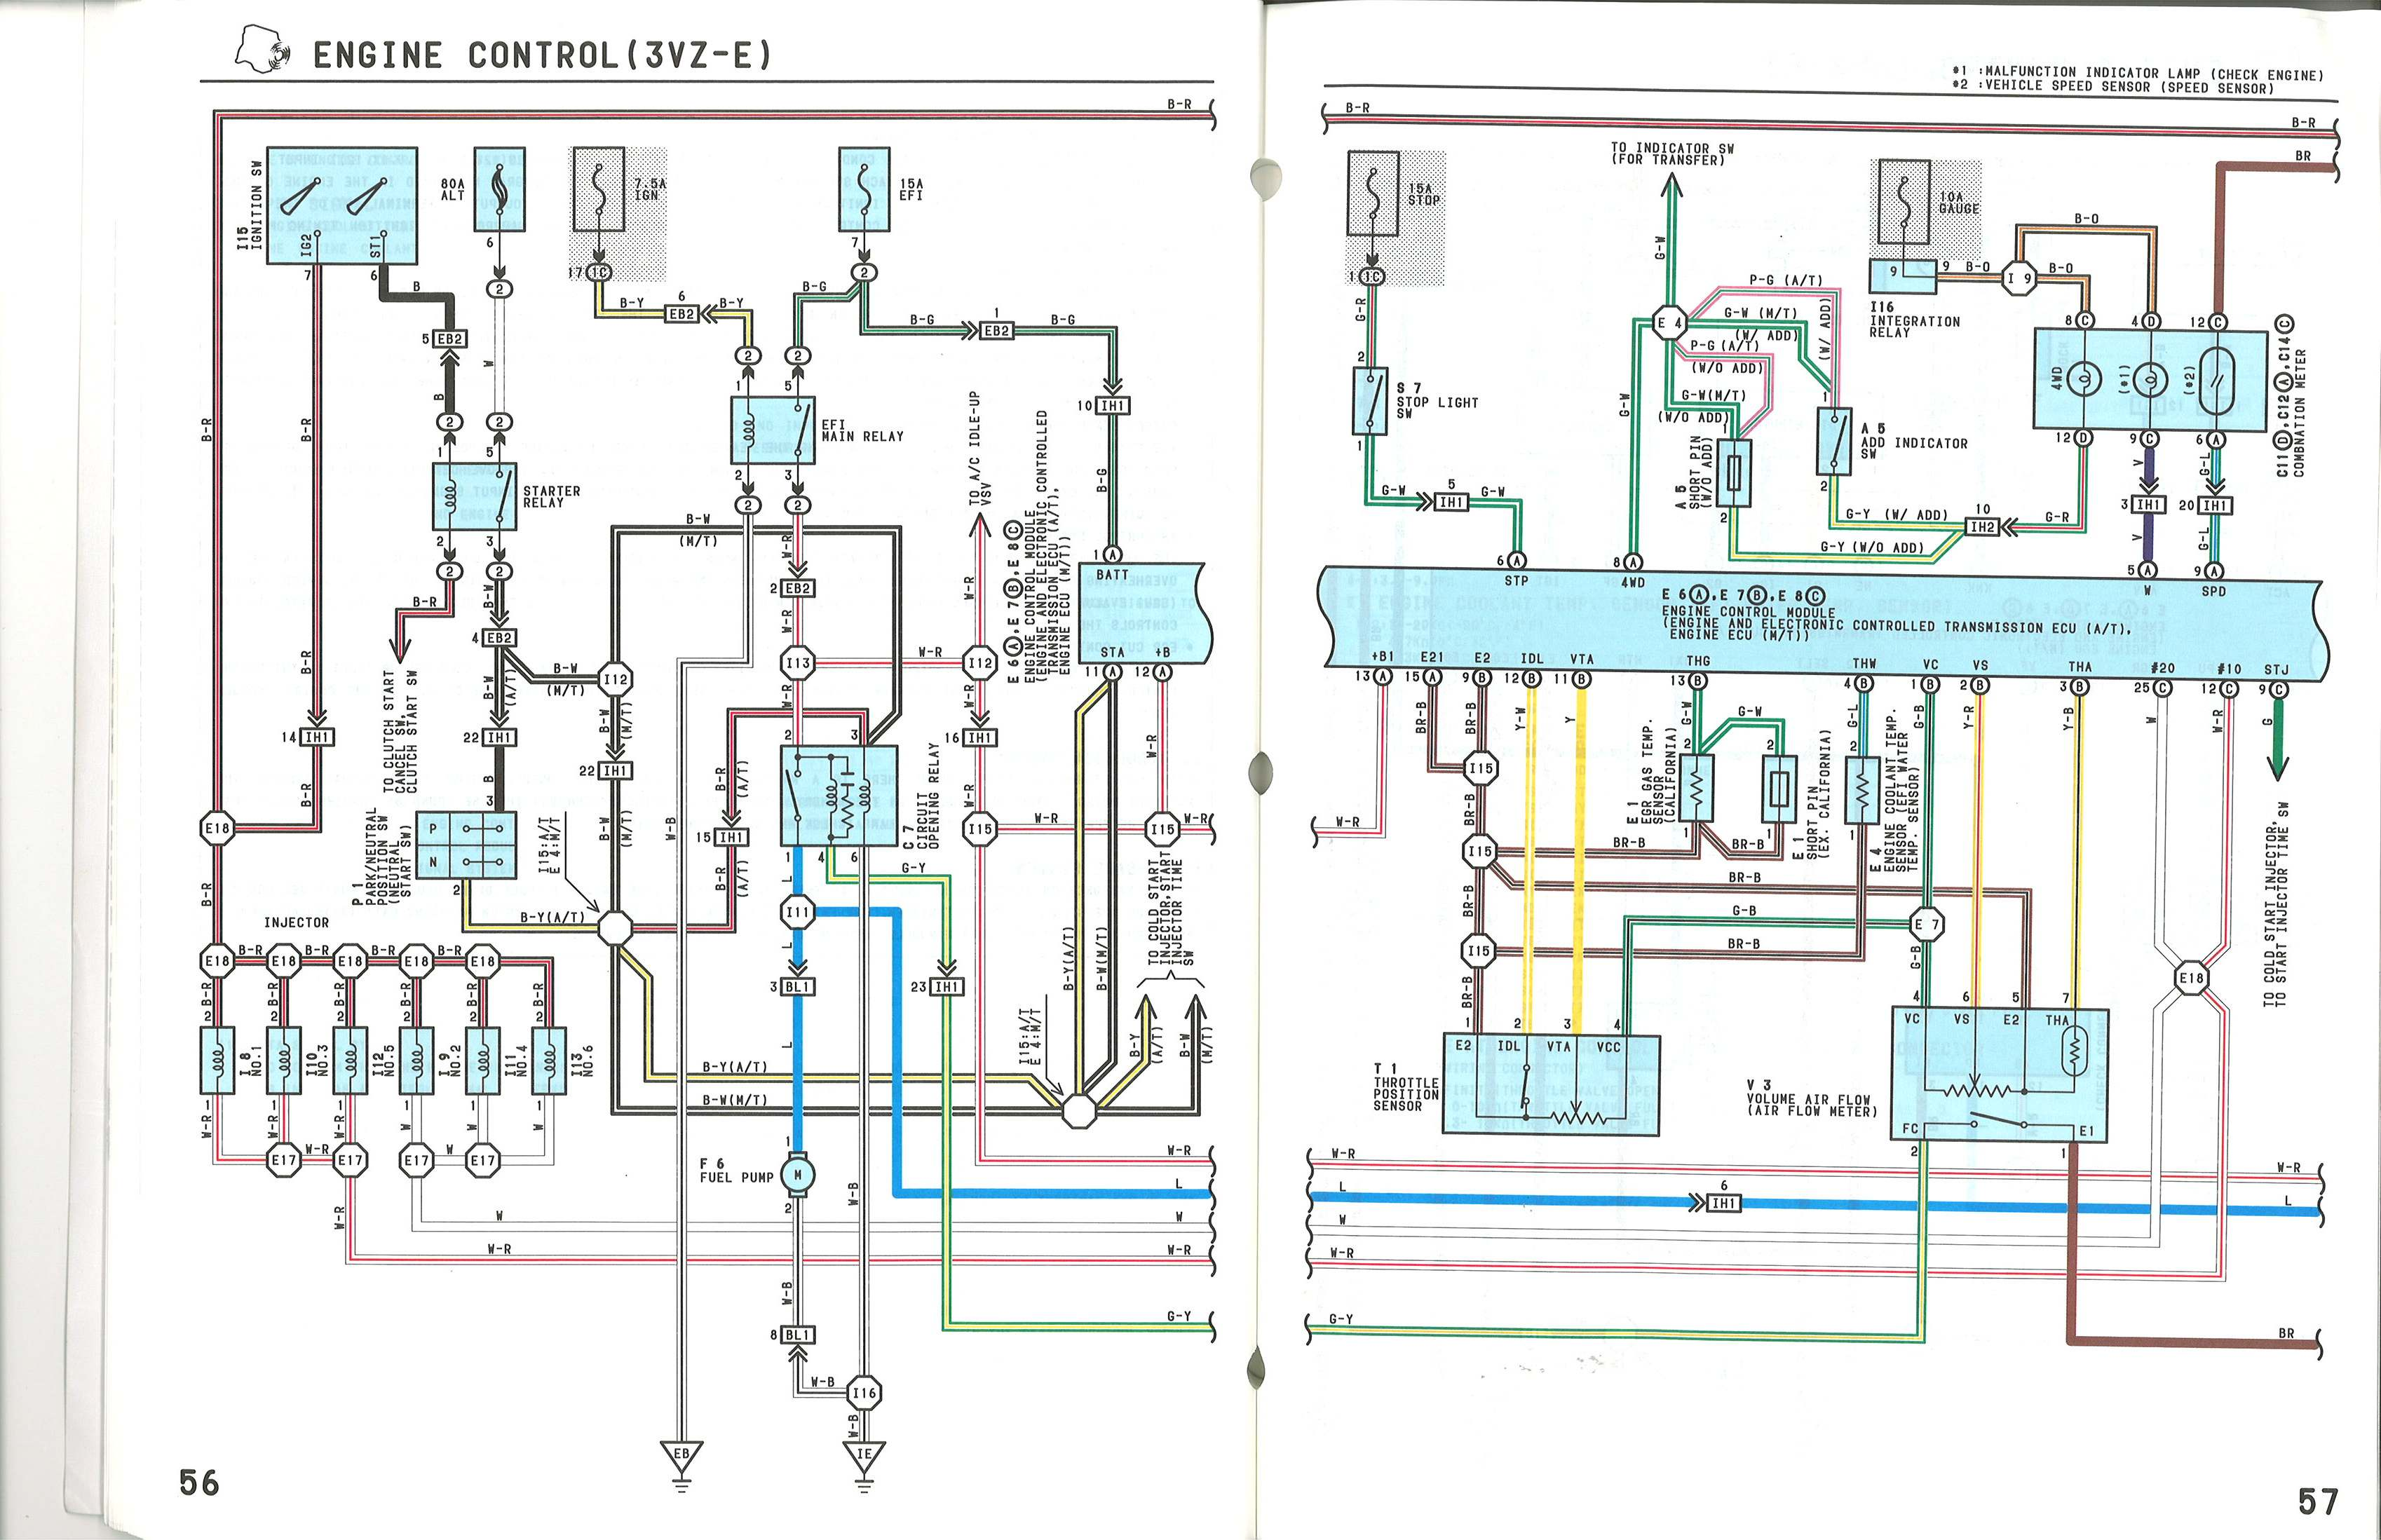 ecu diagram for 1988 3vz e yotatech forums snjschmidt com wiring eng rol 3vze 1 jpg